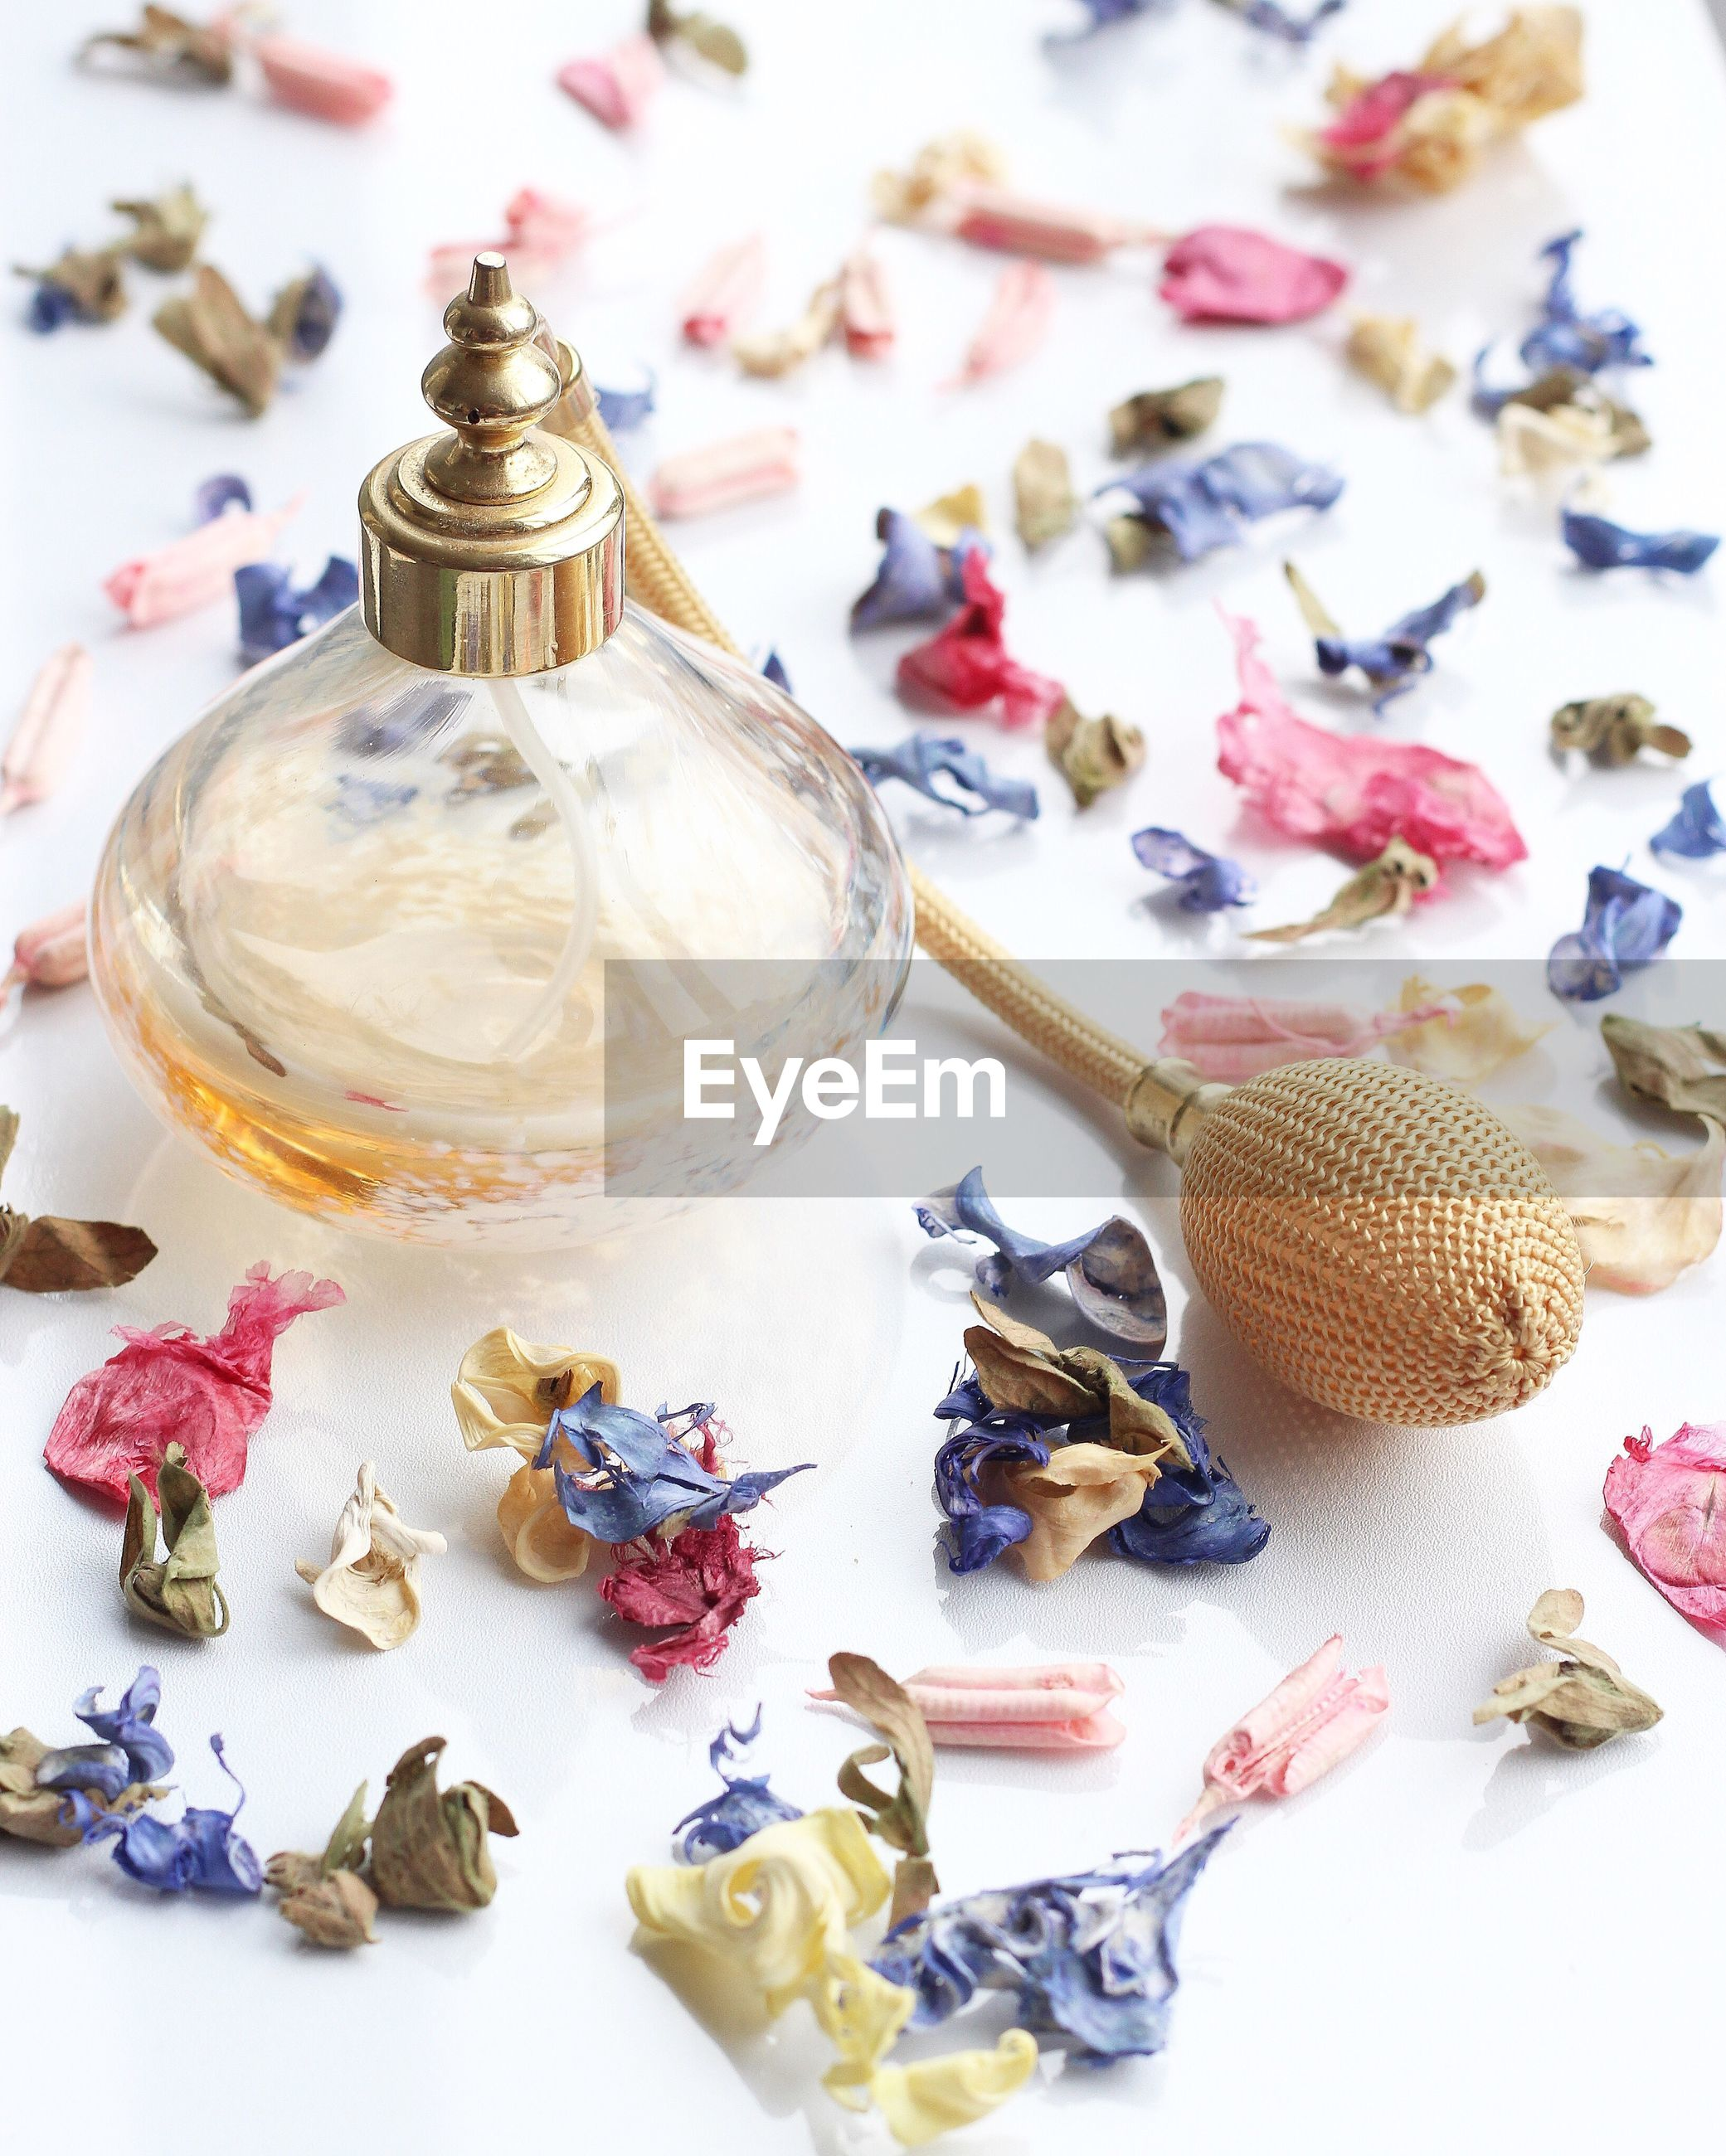 Close-up of perfume bottle and petals on table